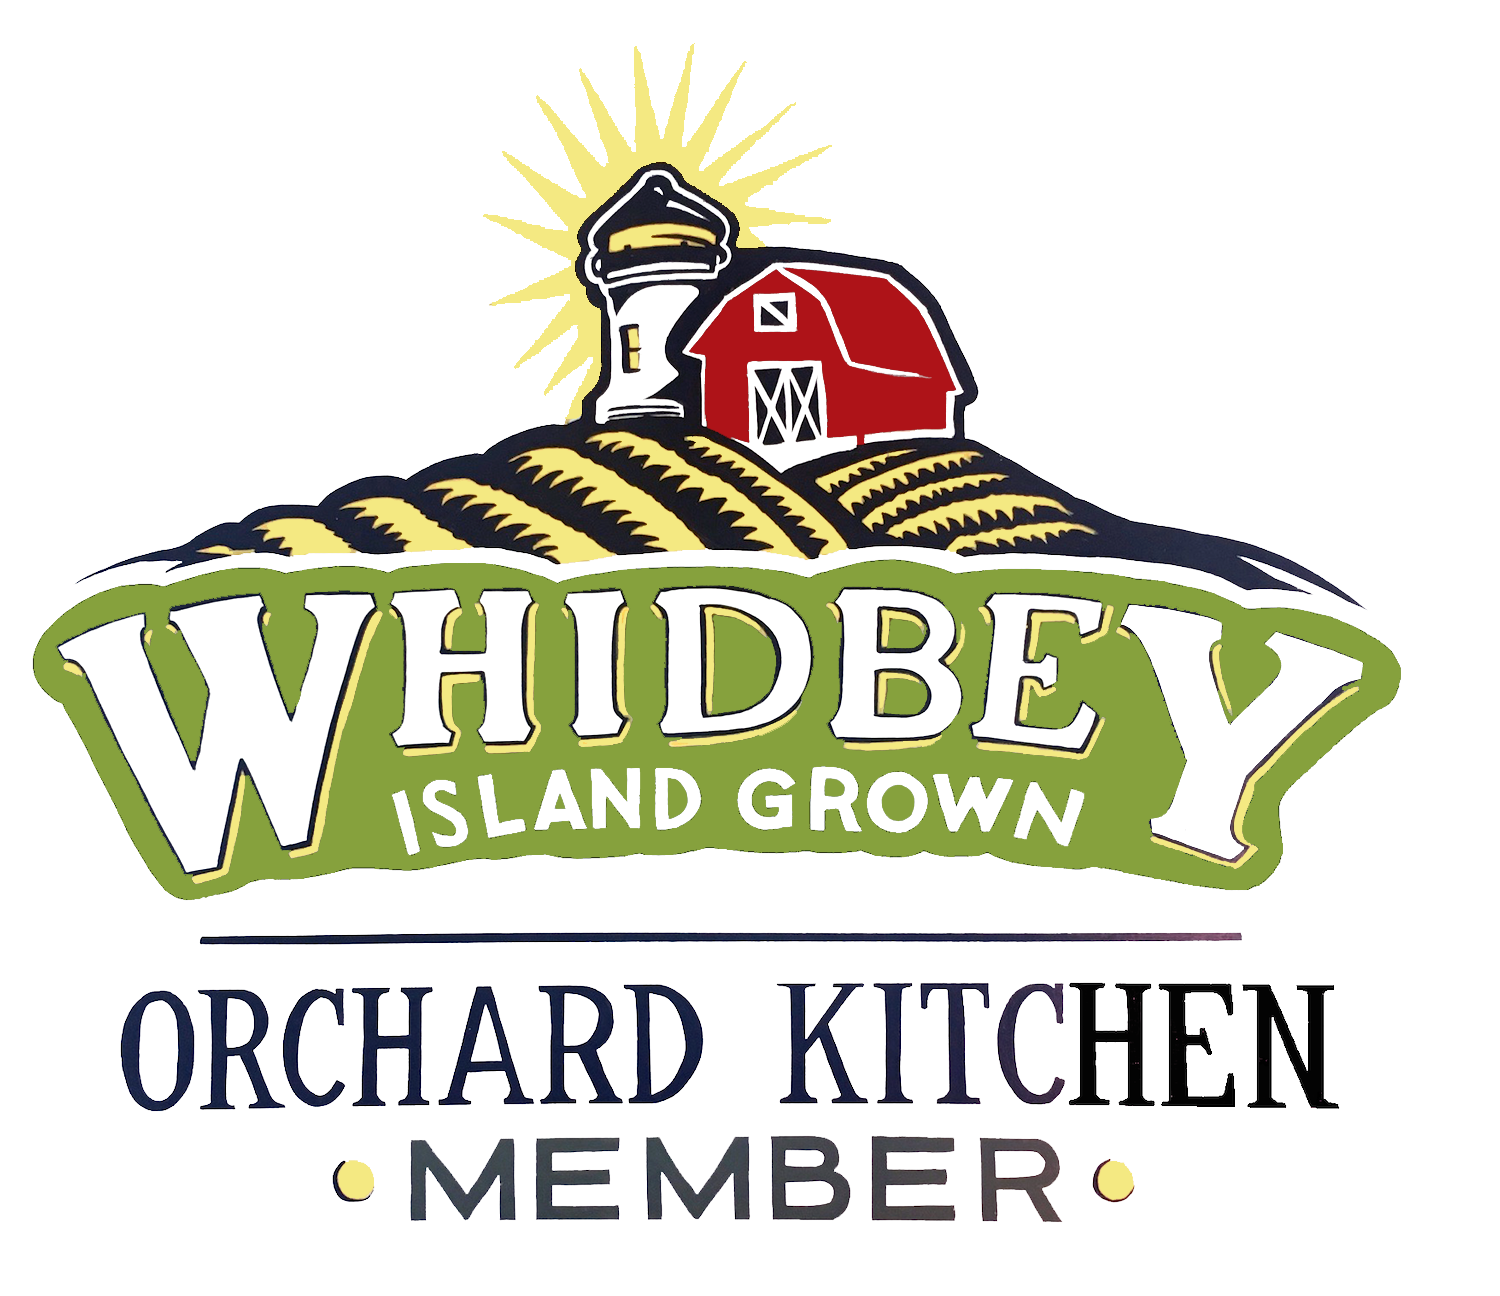 WhidbeyIslandGrownSignCorrectedTransparent.png